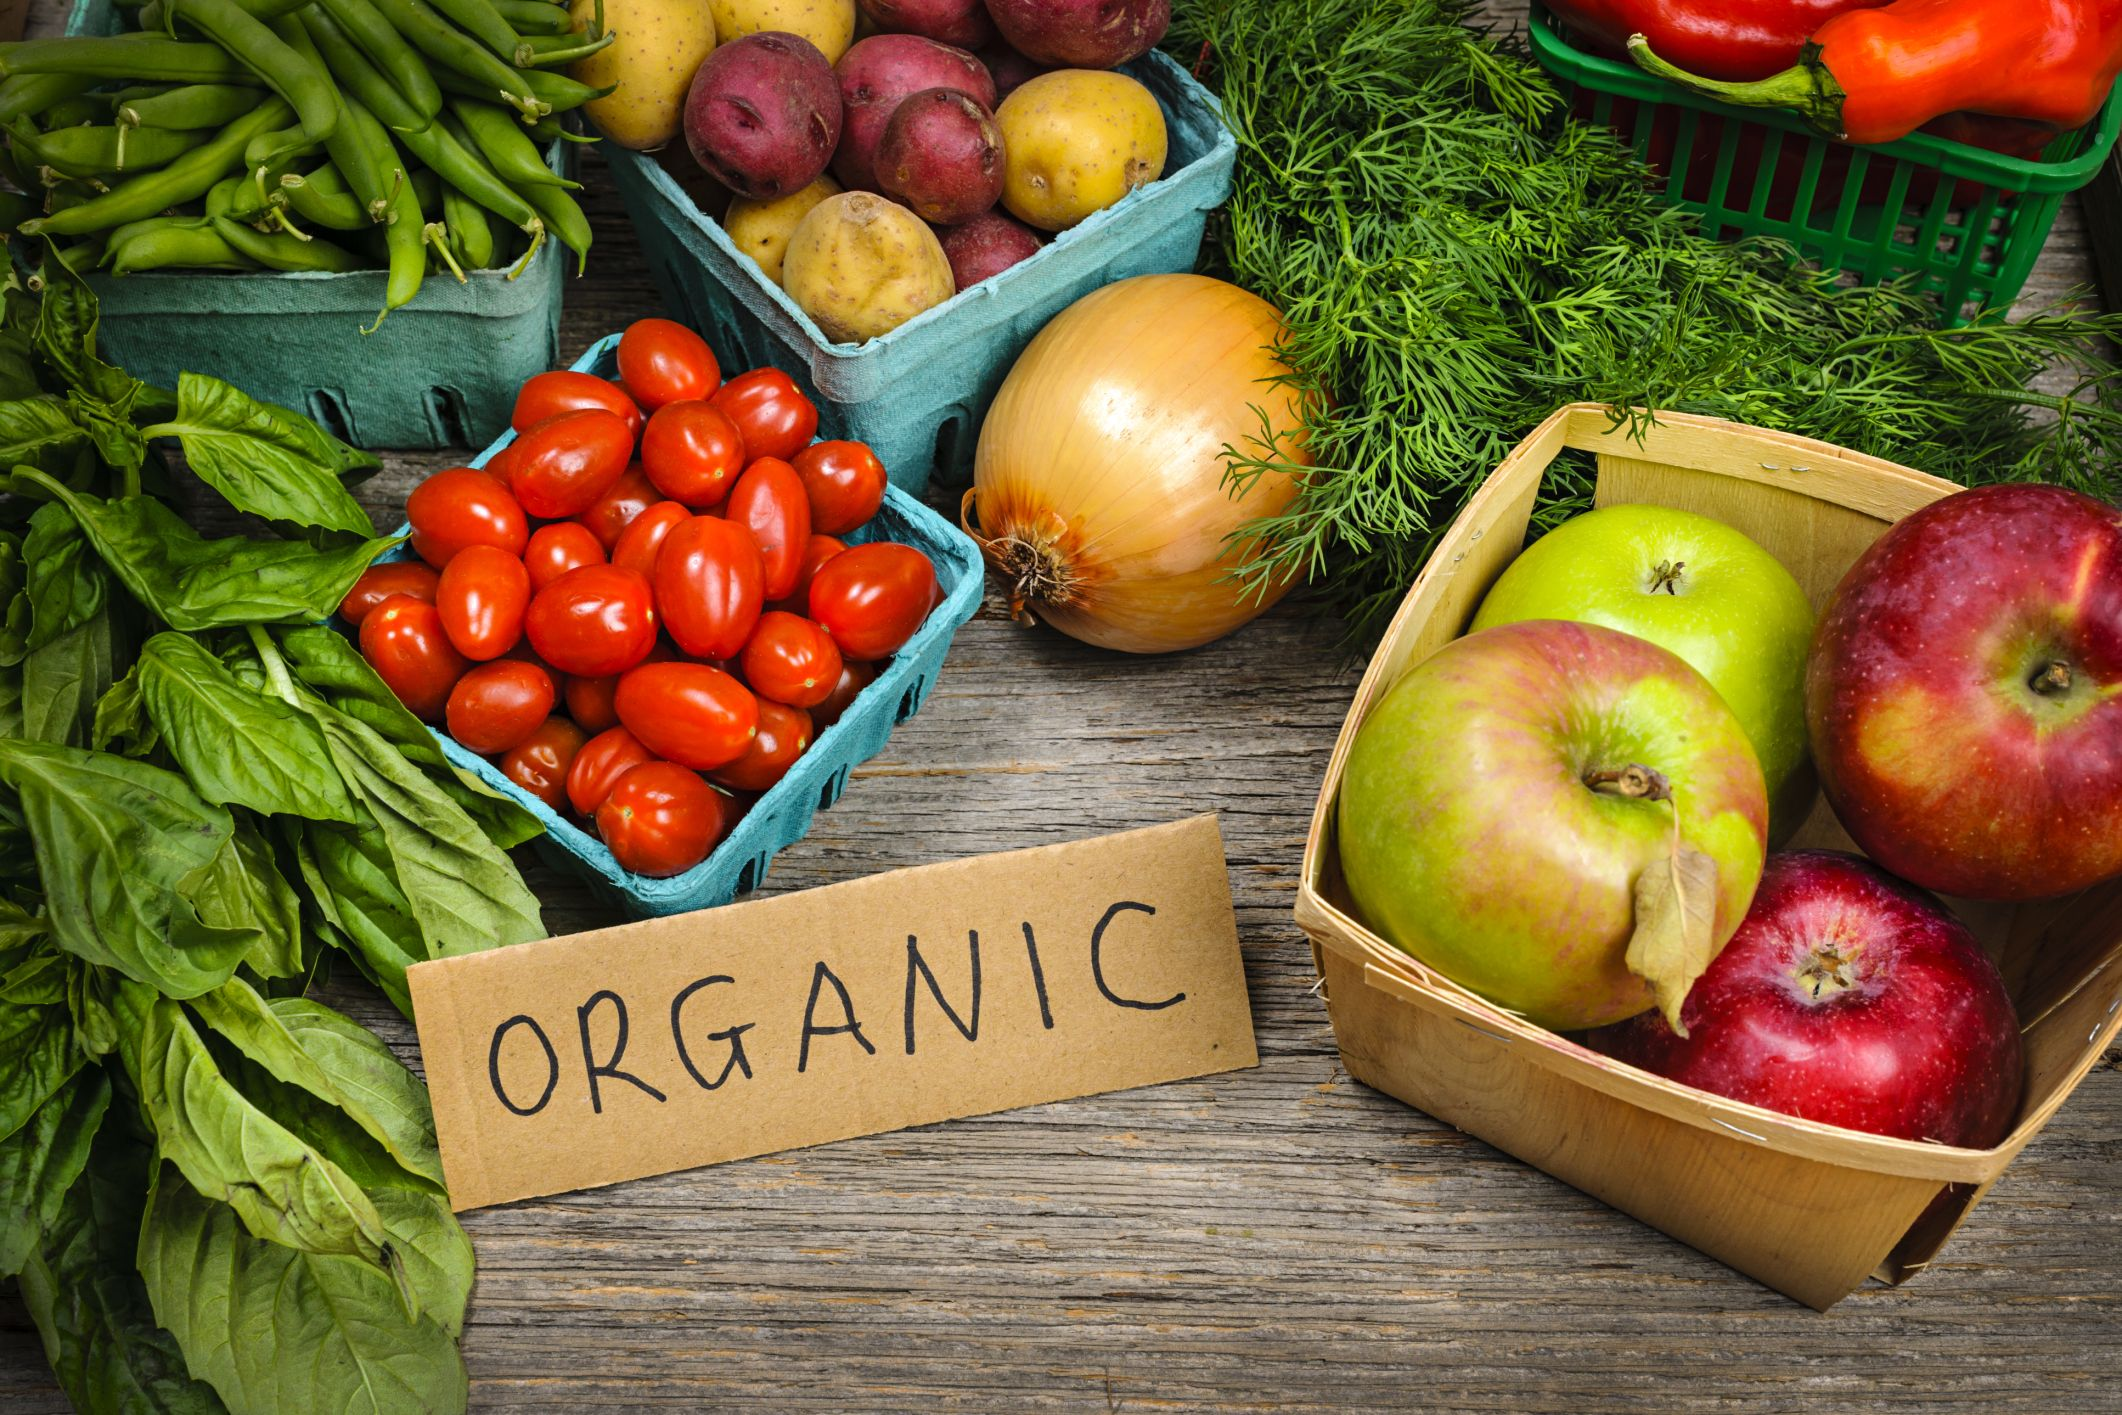 Guess what? Organic really is better.